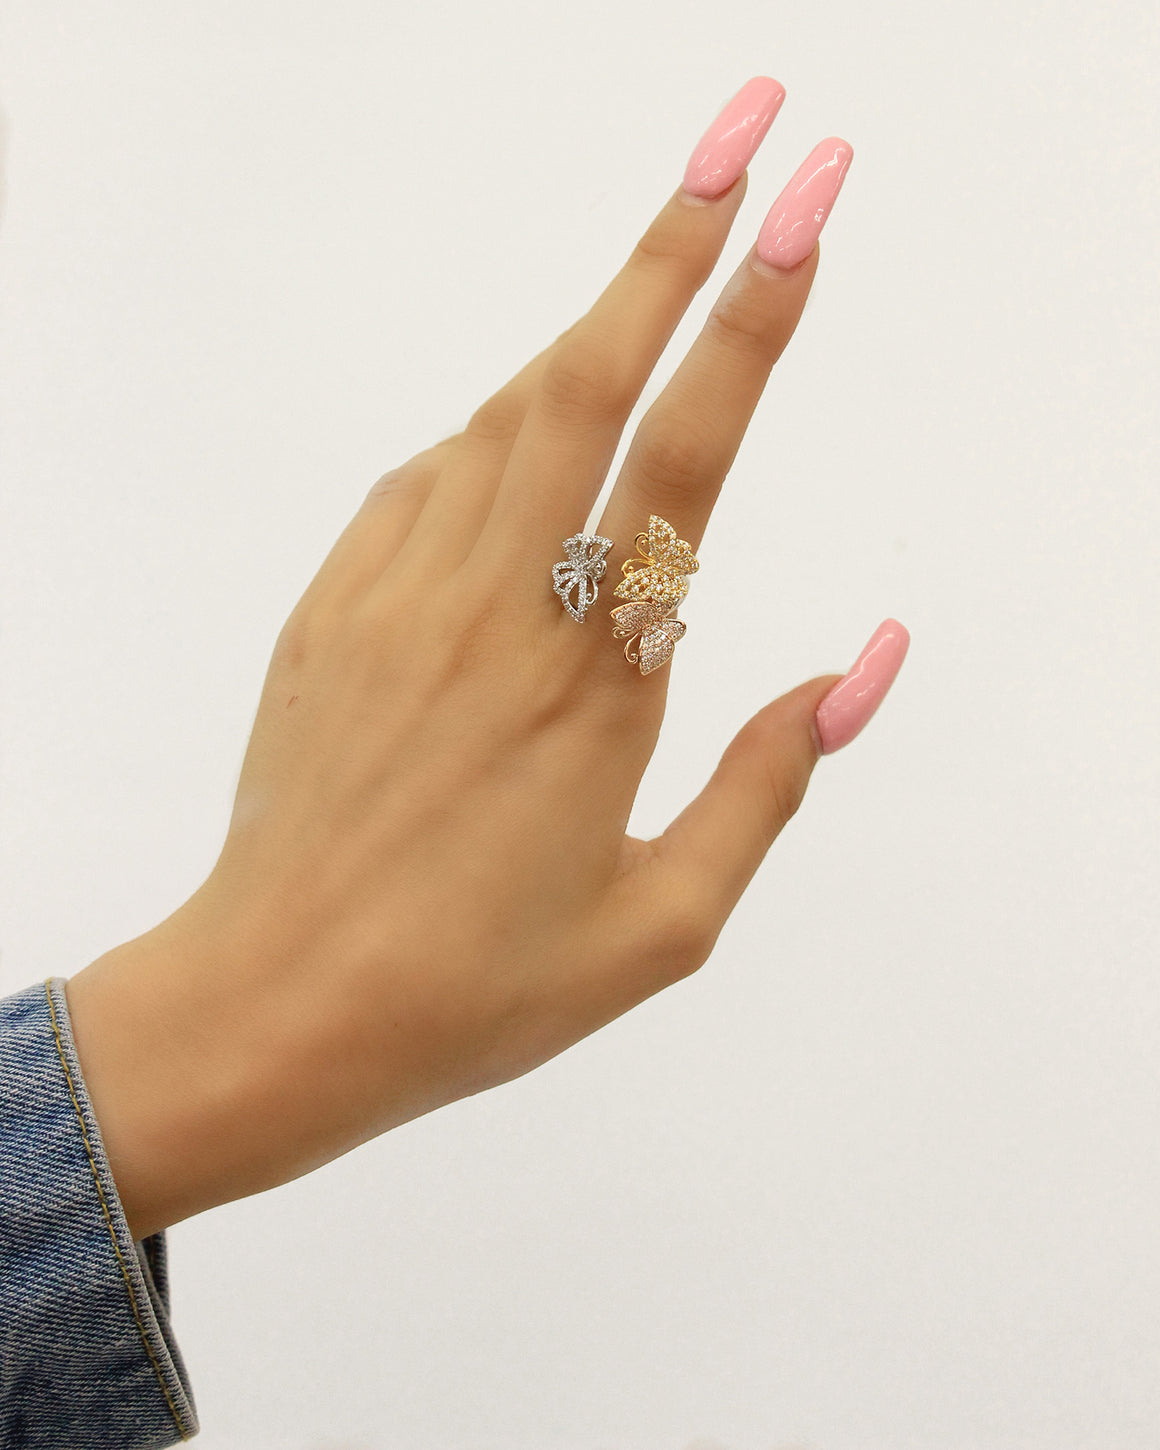 SO DREAMY RING